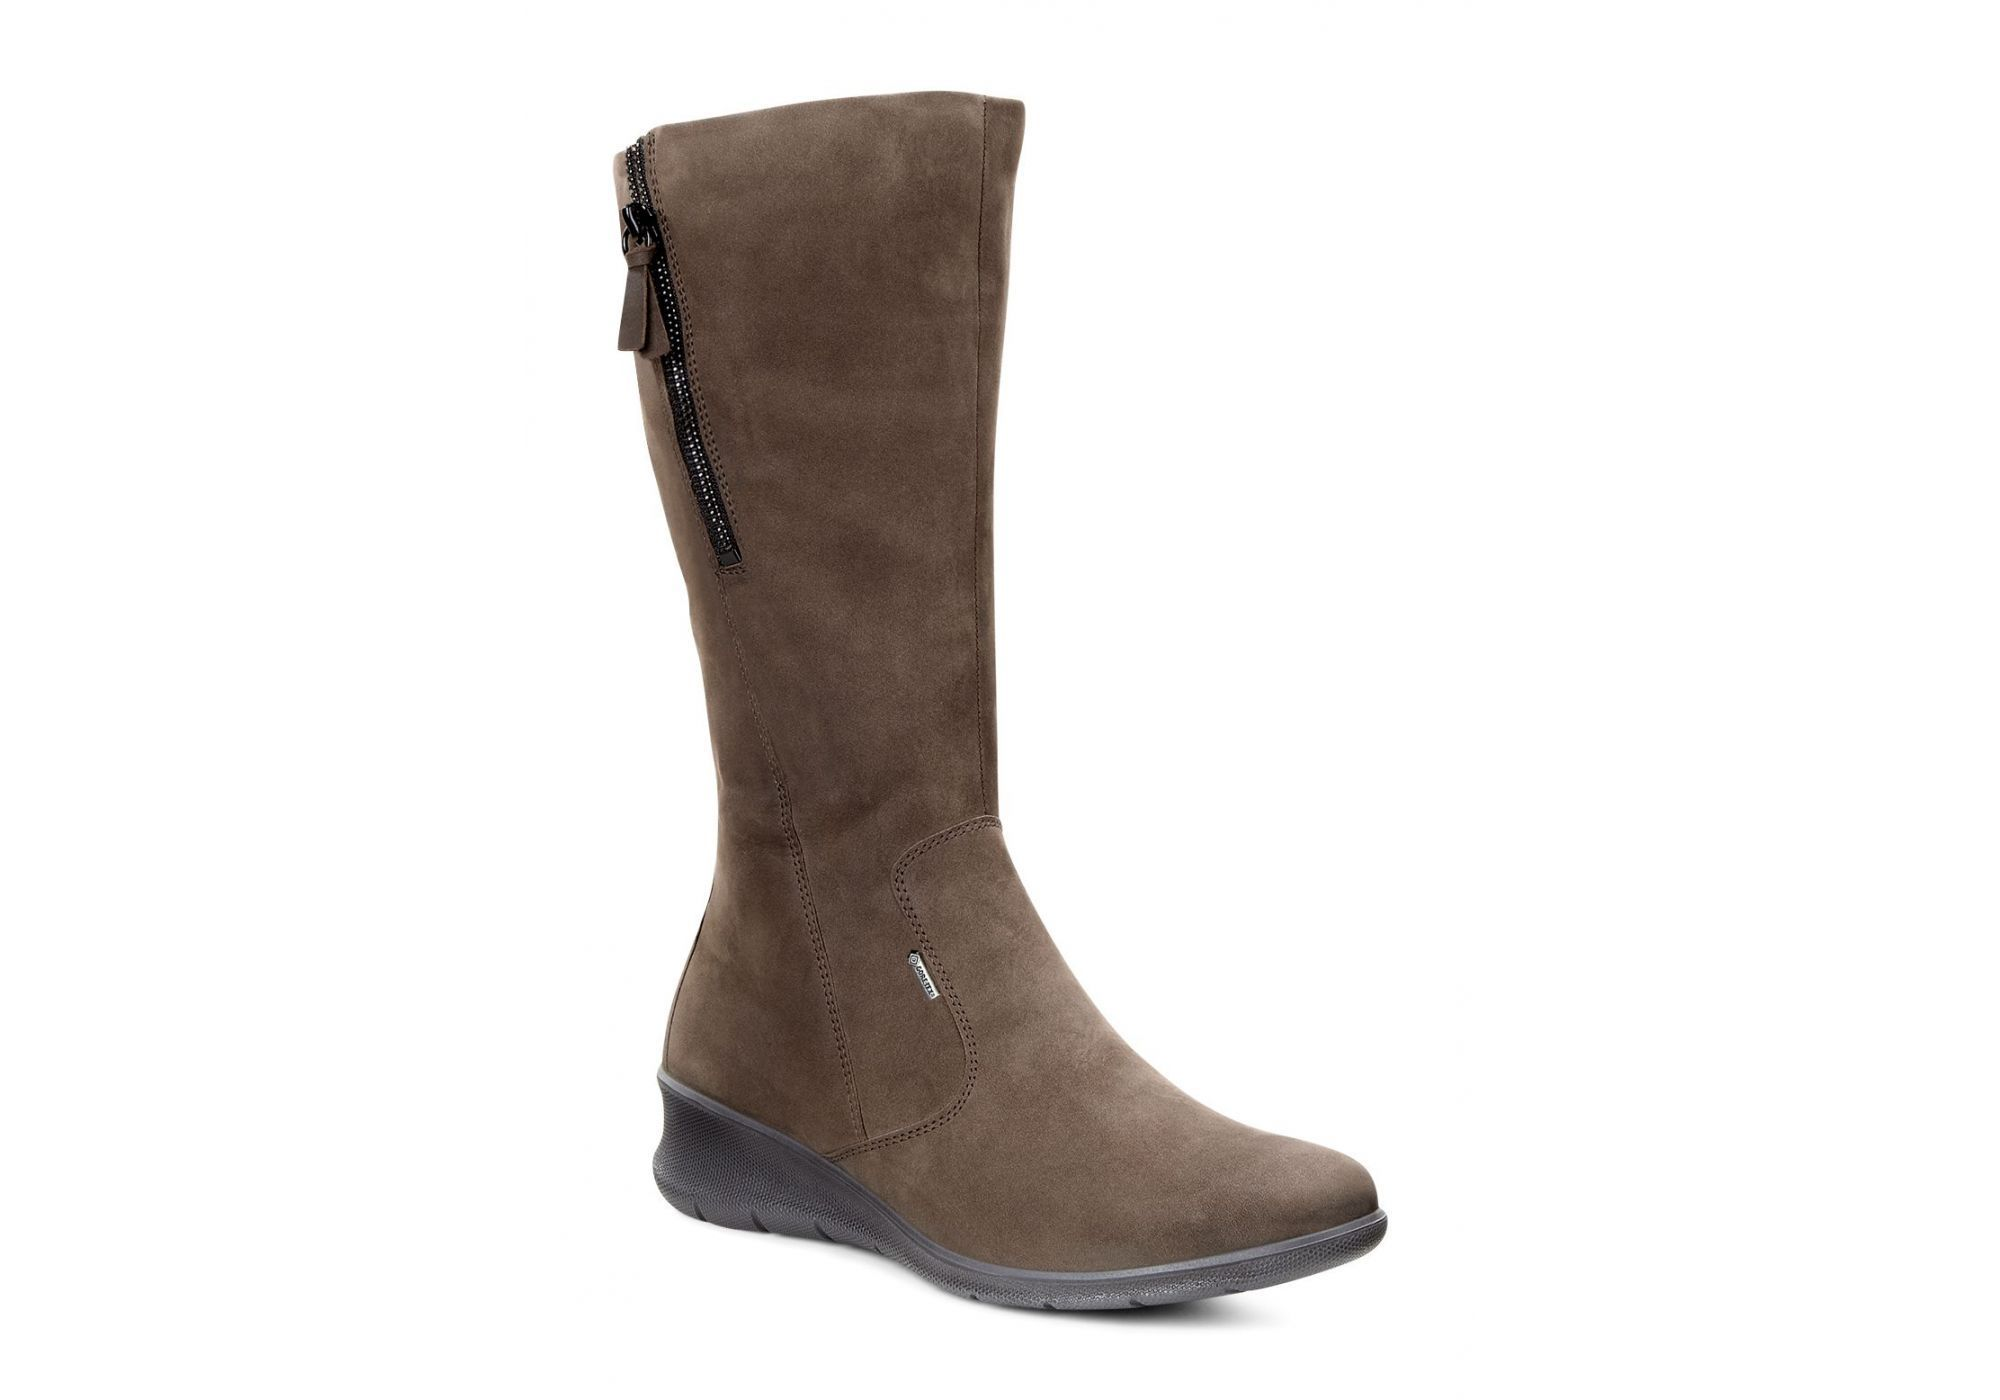 ECCO Womens Casual Boots (With images